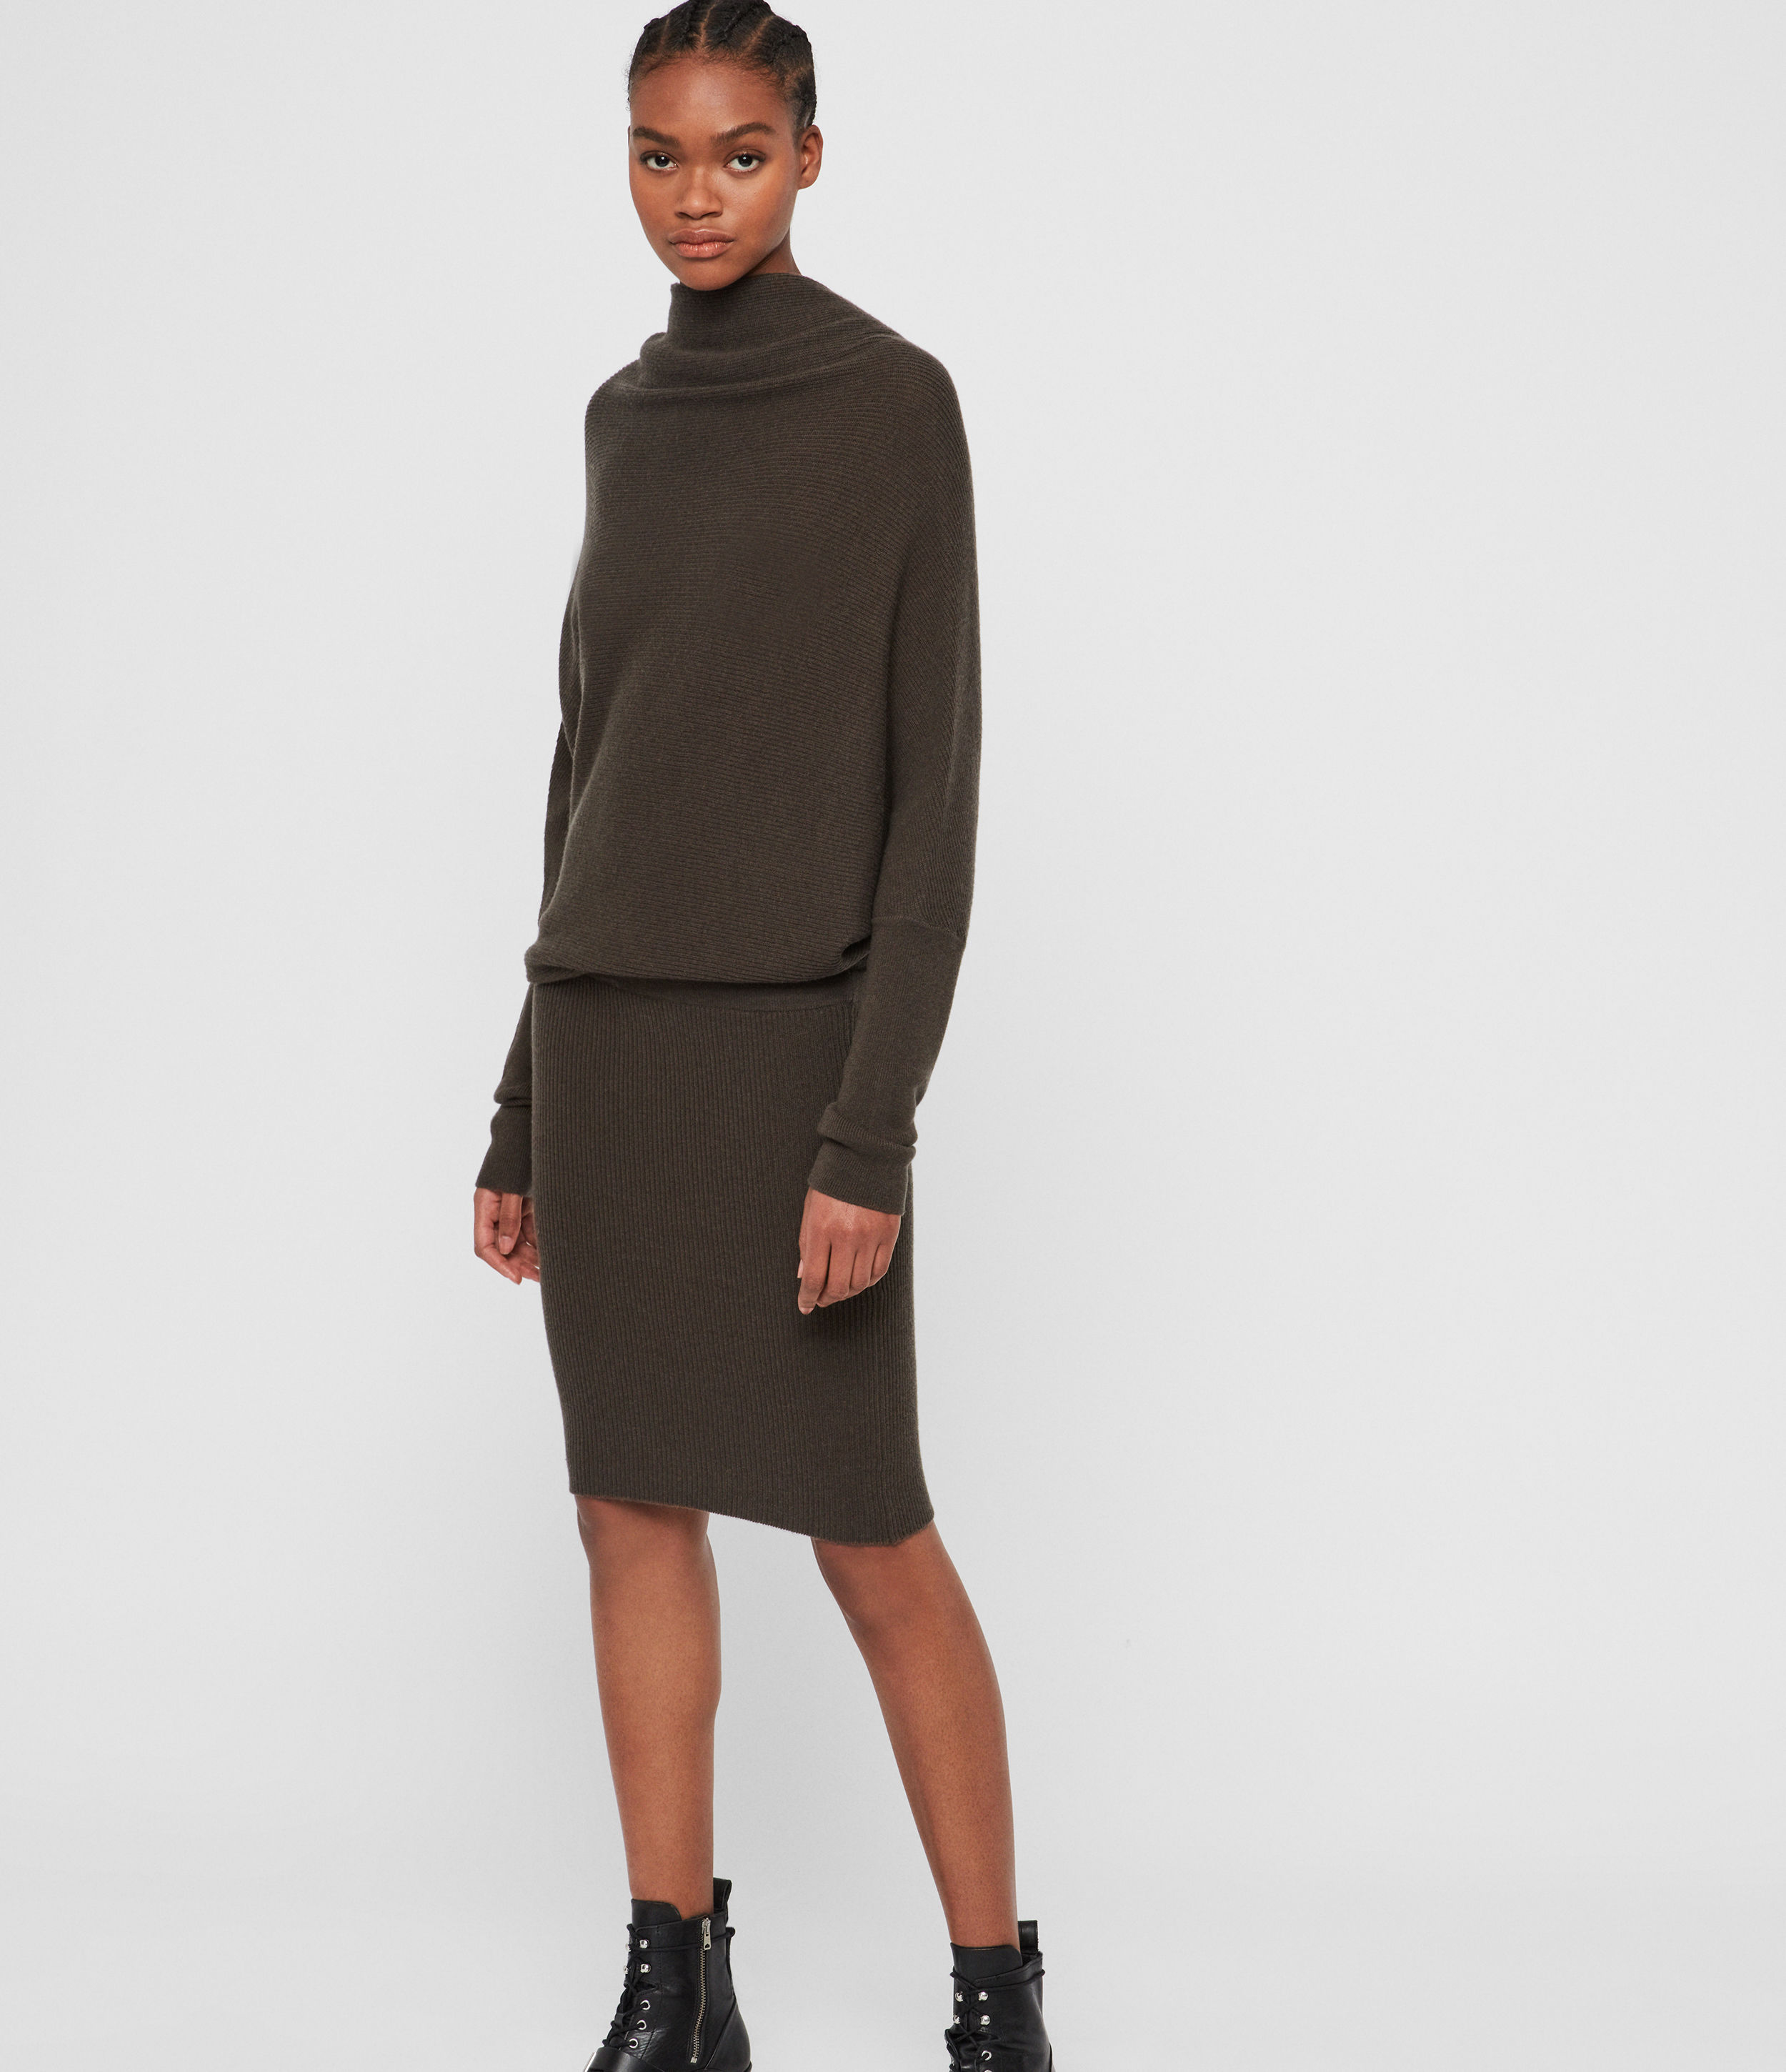 AllSaints Ridley Cashmere Blend Dress